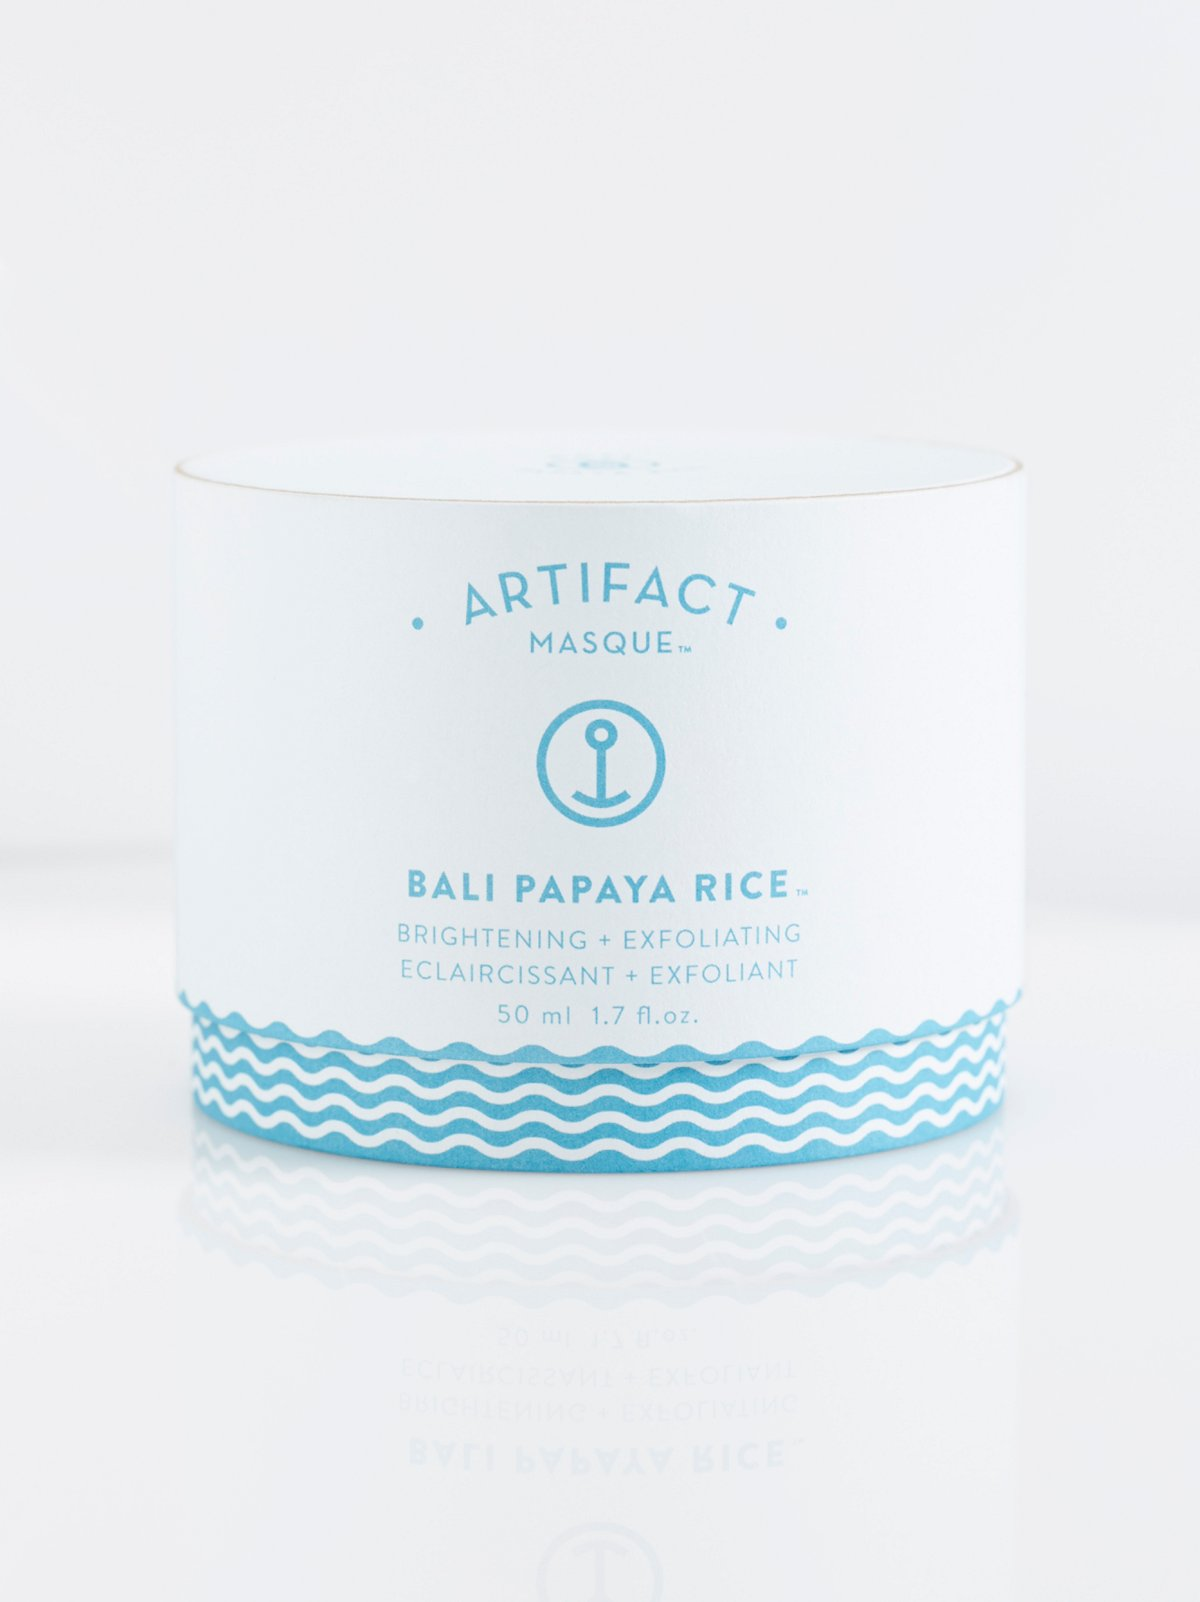 Bali Papaya Rice Masque